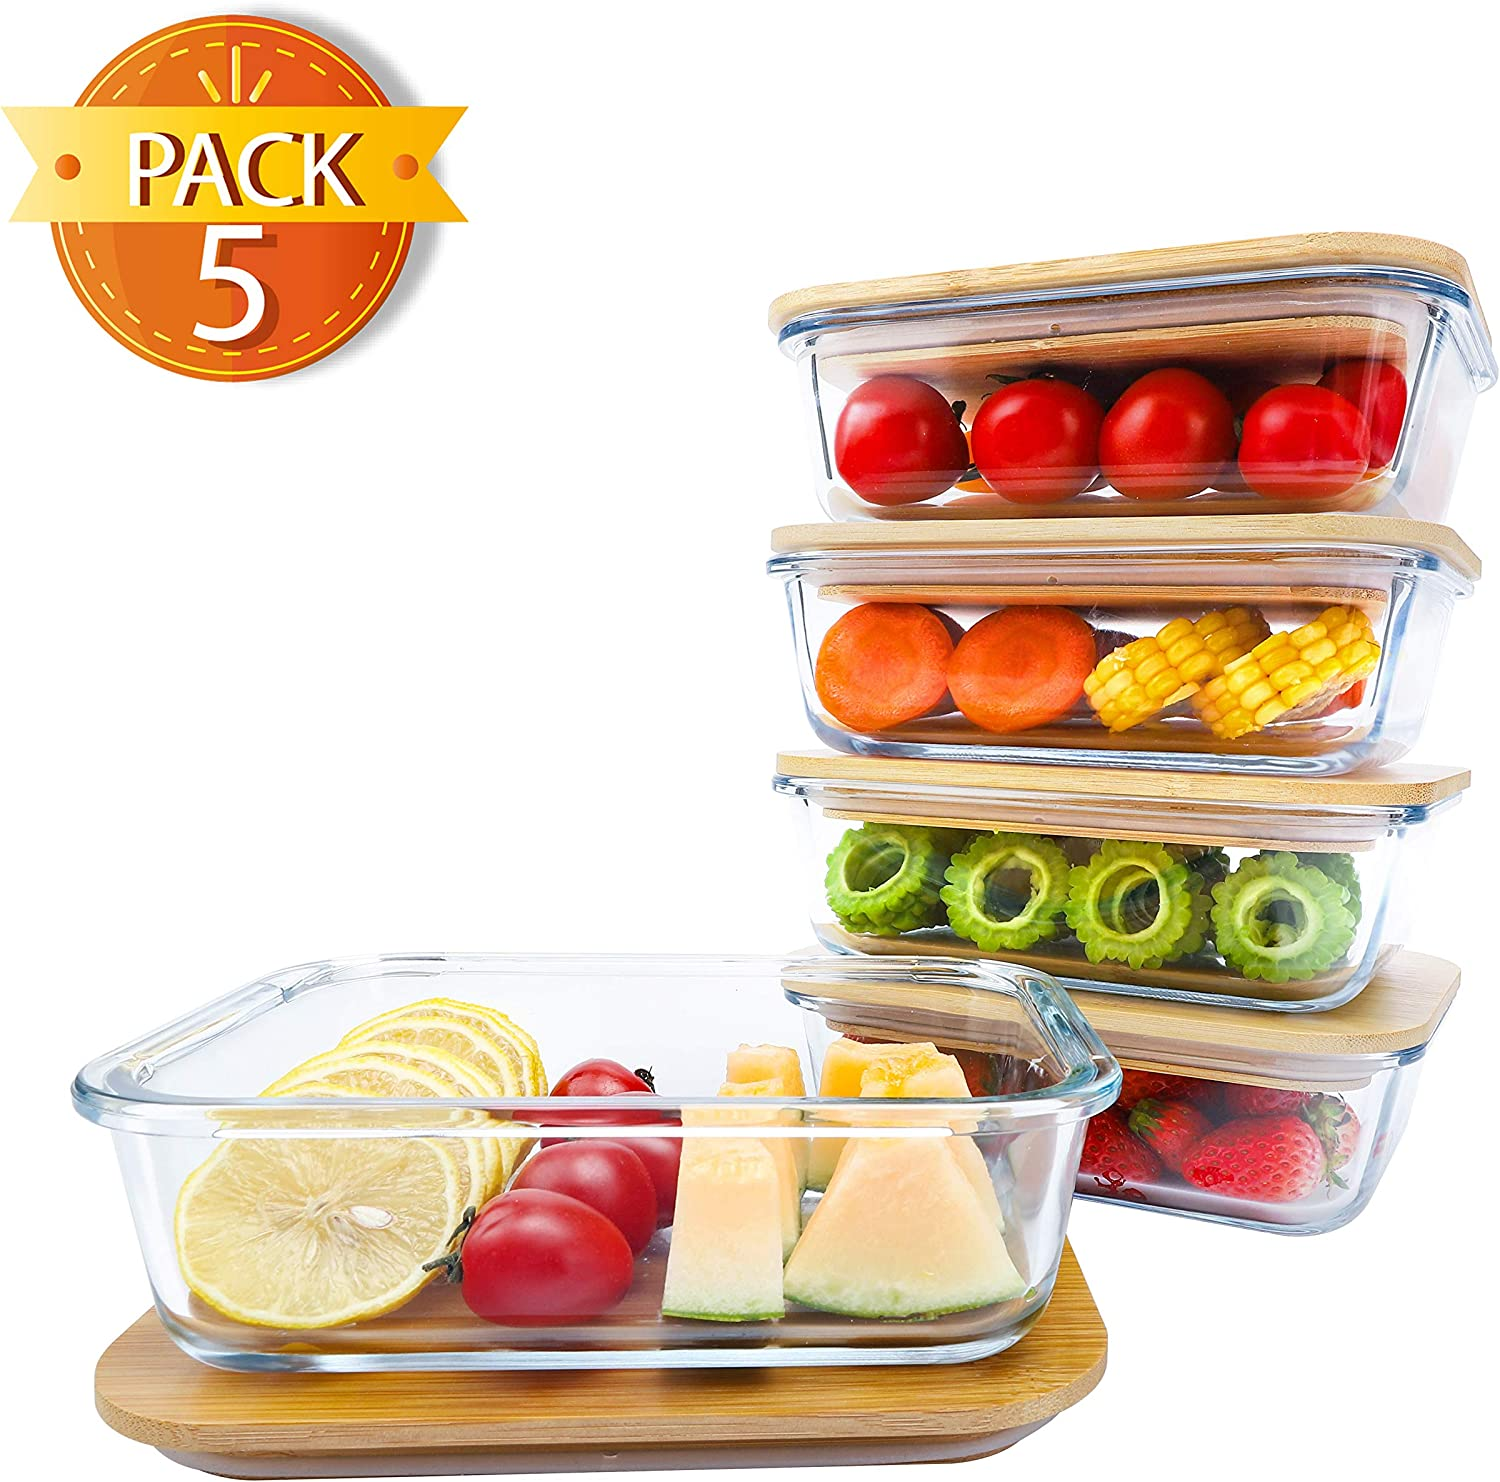 BlueHills Premium Glass Meal Prep Lunch Containers with bamboo Lids Plastic Free Glass Food Containers BPA-Free Microwave Oven Freezer Dishwasher Safe 5 pack set 10 pieces (G004 bamboo lid)